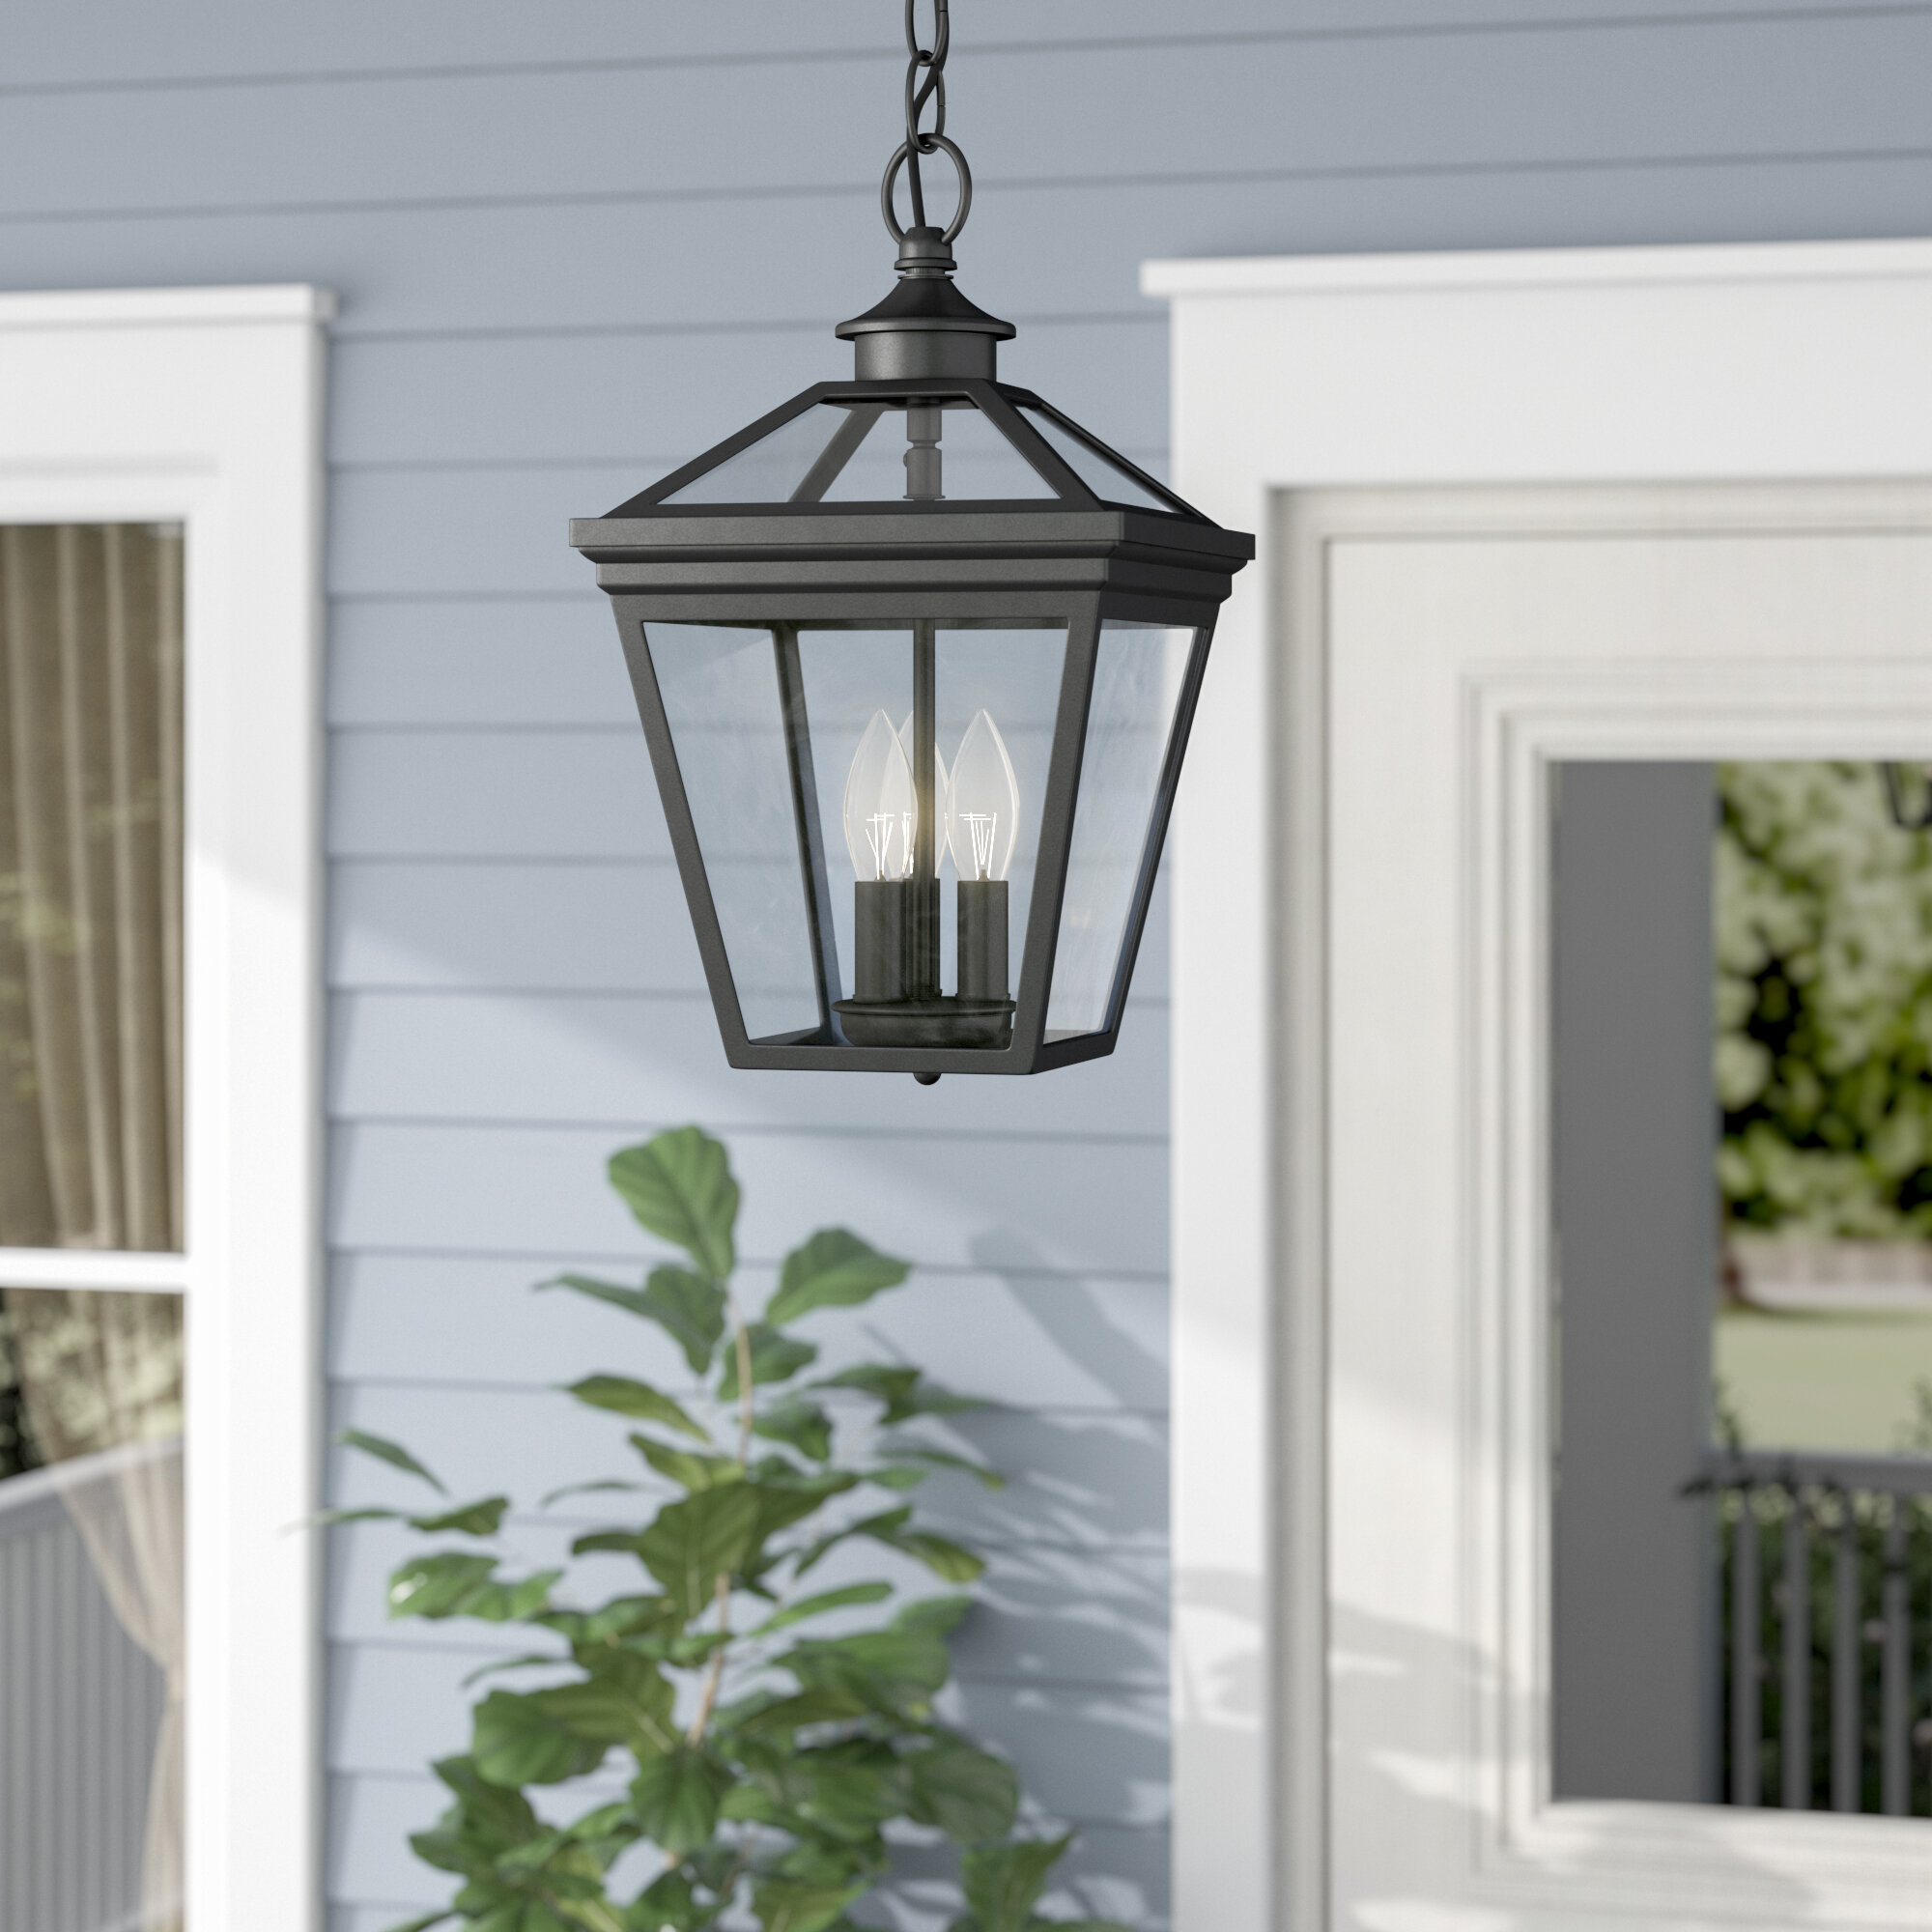 outdoor hanging porch lights exterior darby home co coleg 3light outdoor hanging lantern reviews wayfair